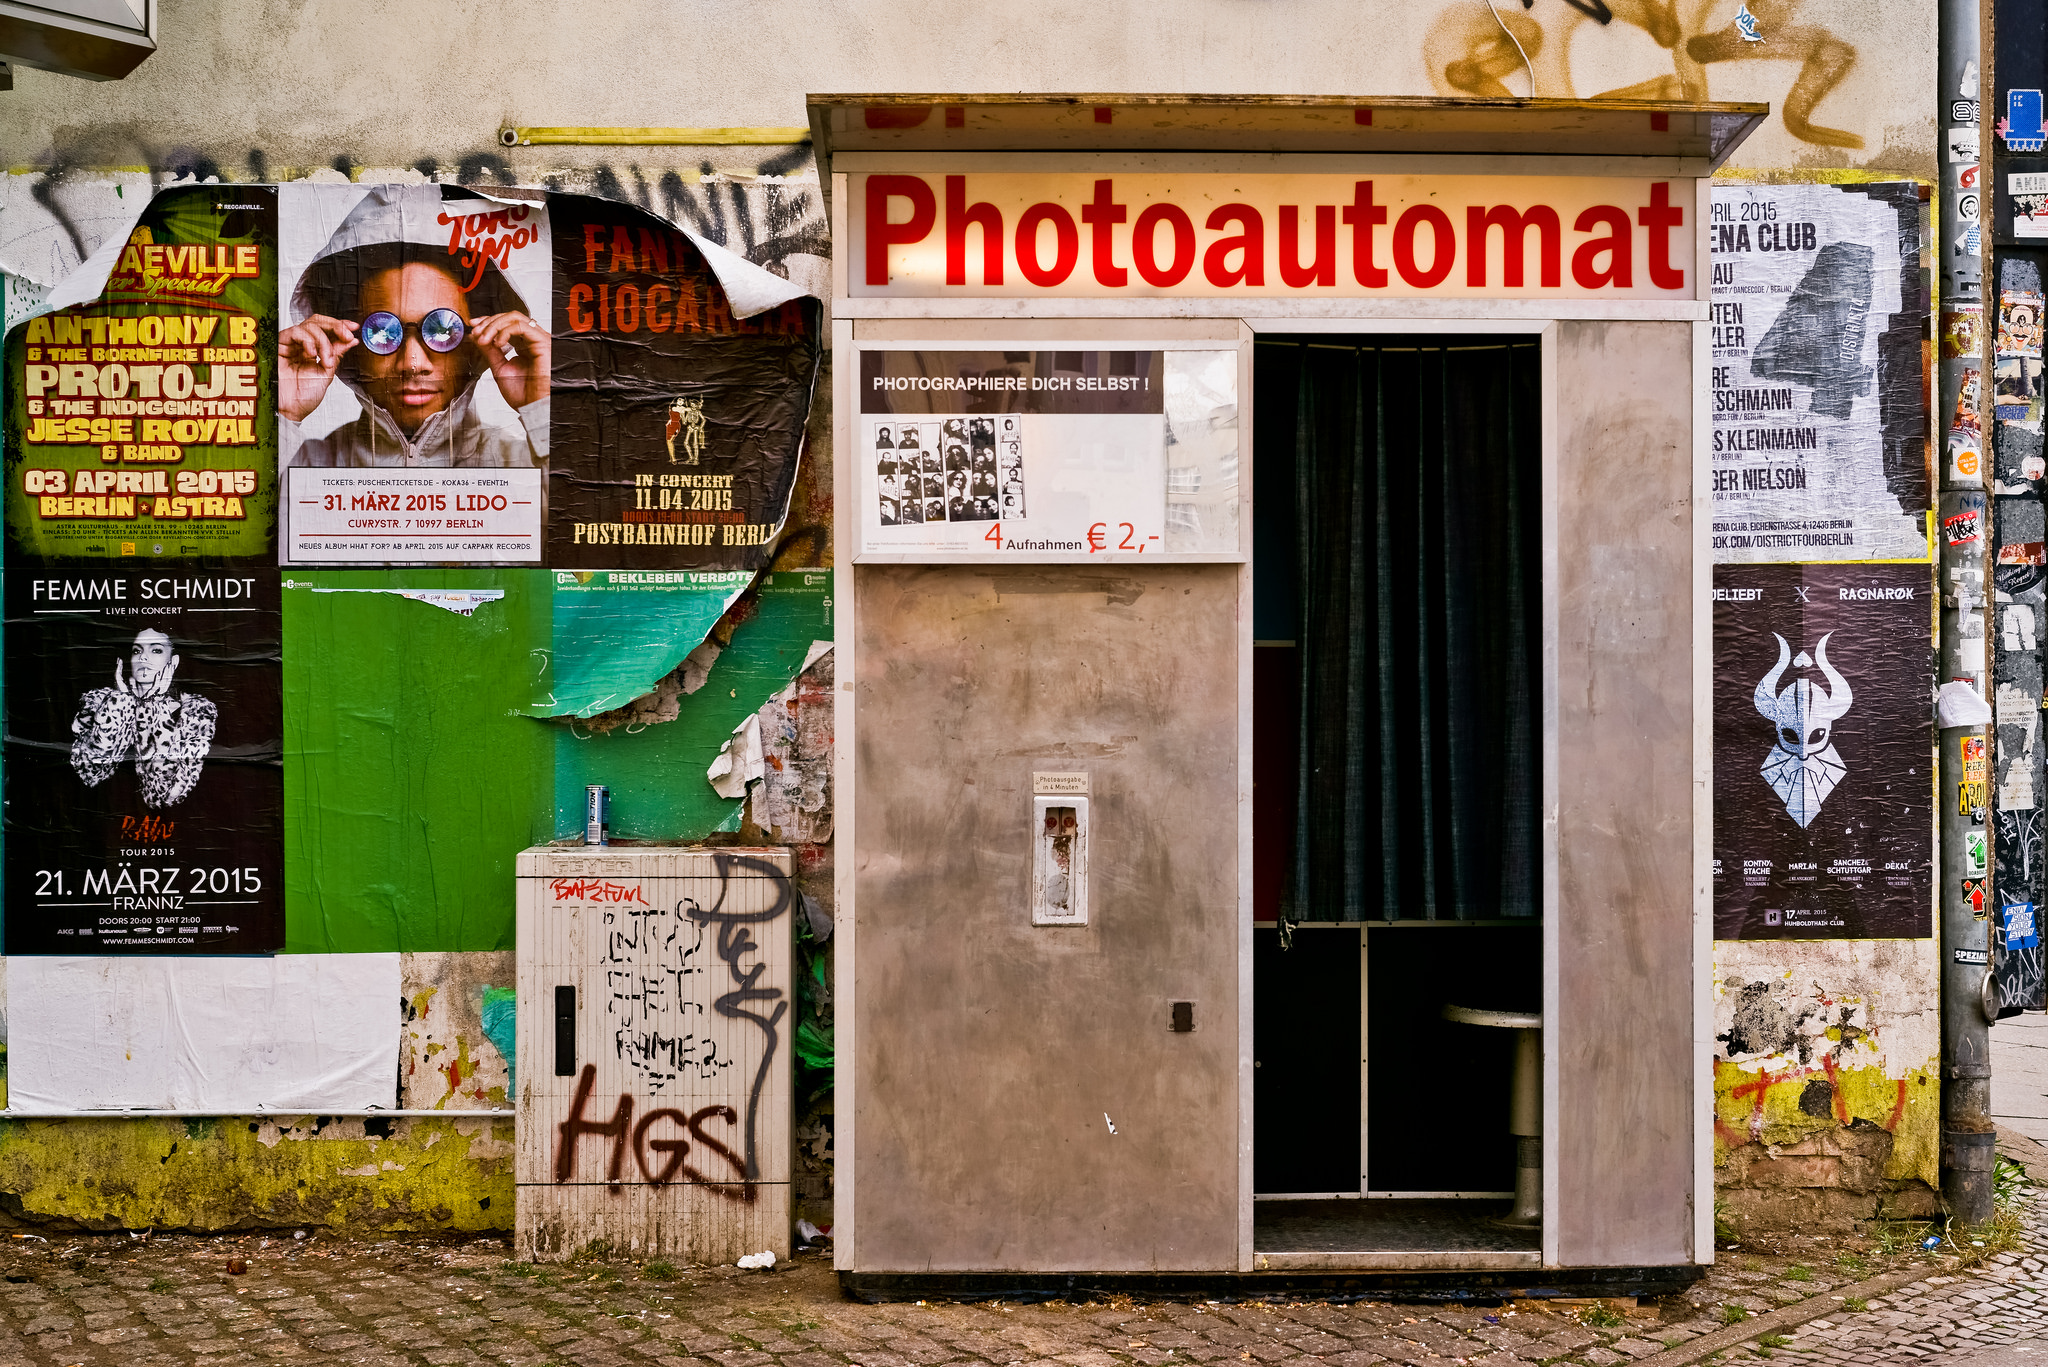 take a photo of yourself Photoautomat | © martin / Flickr